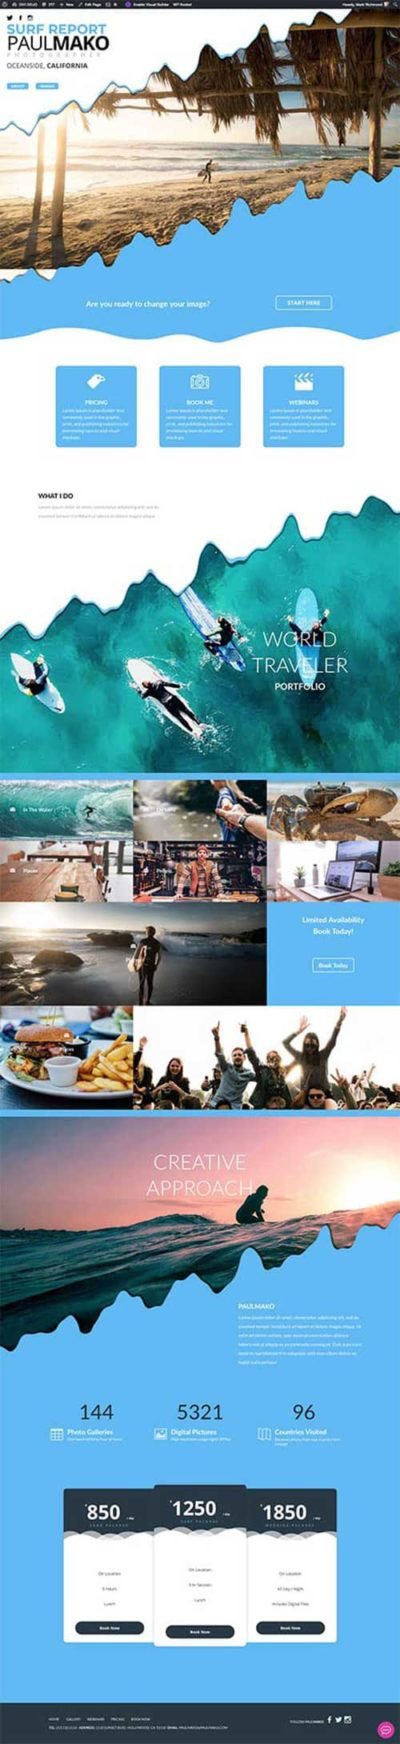 divi layout for surf report beaches